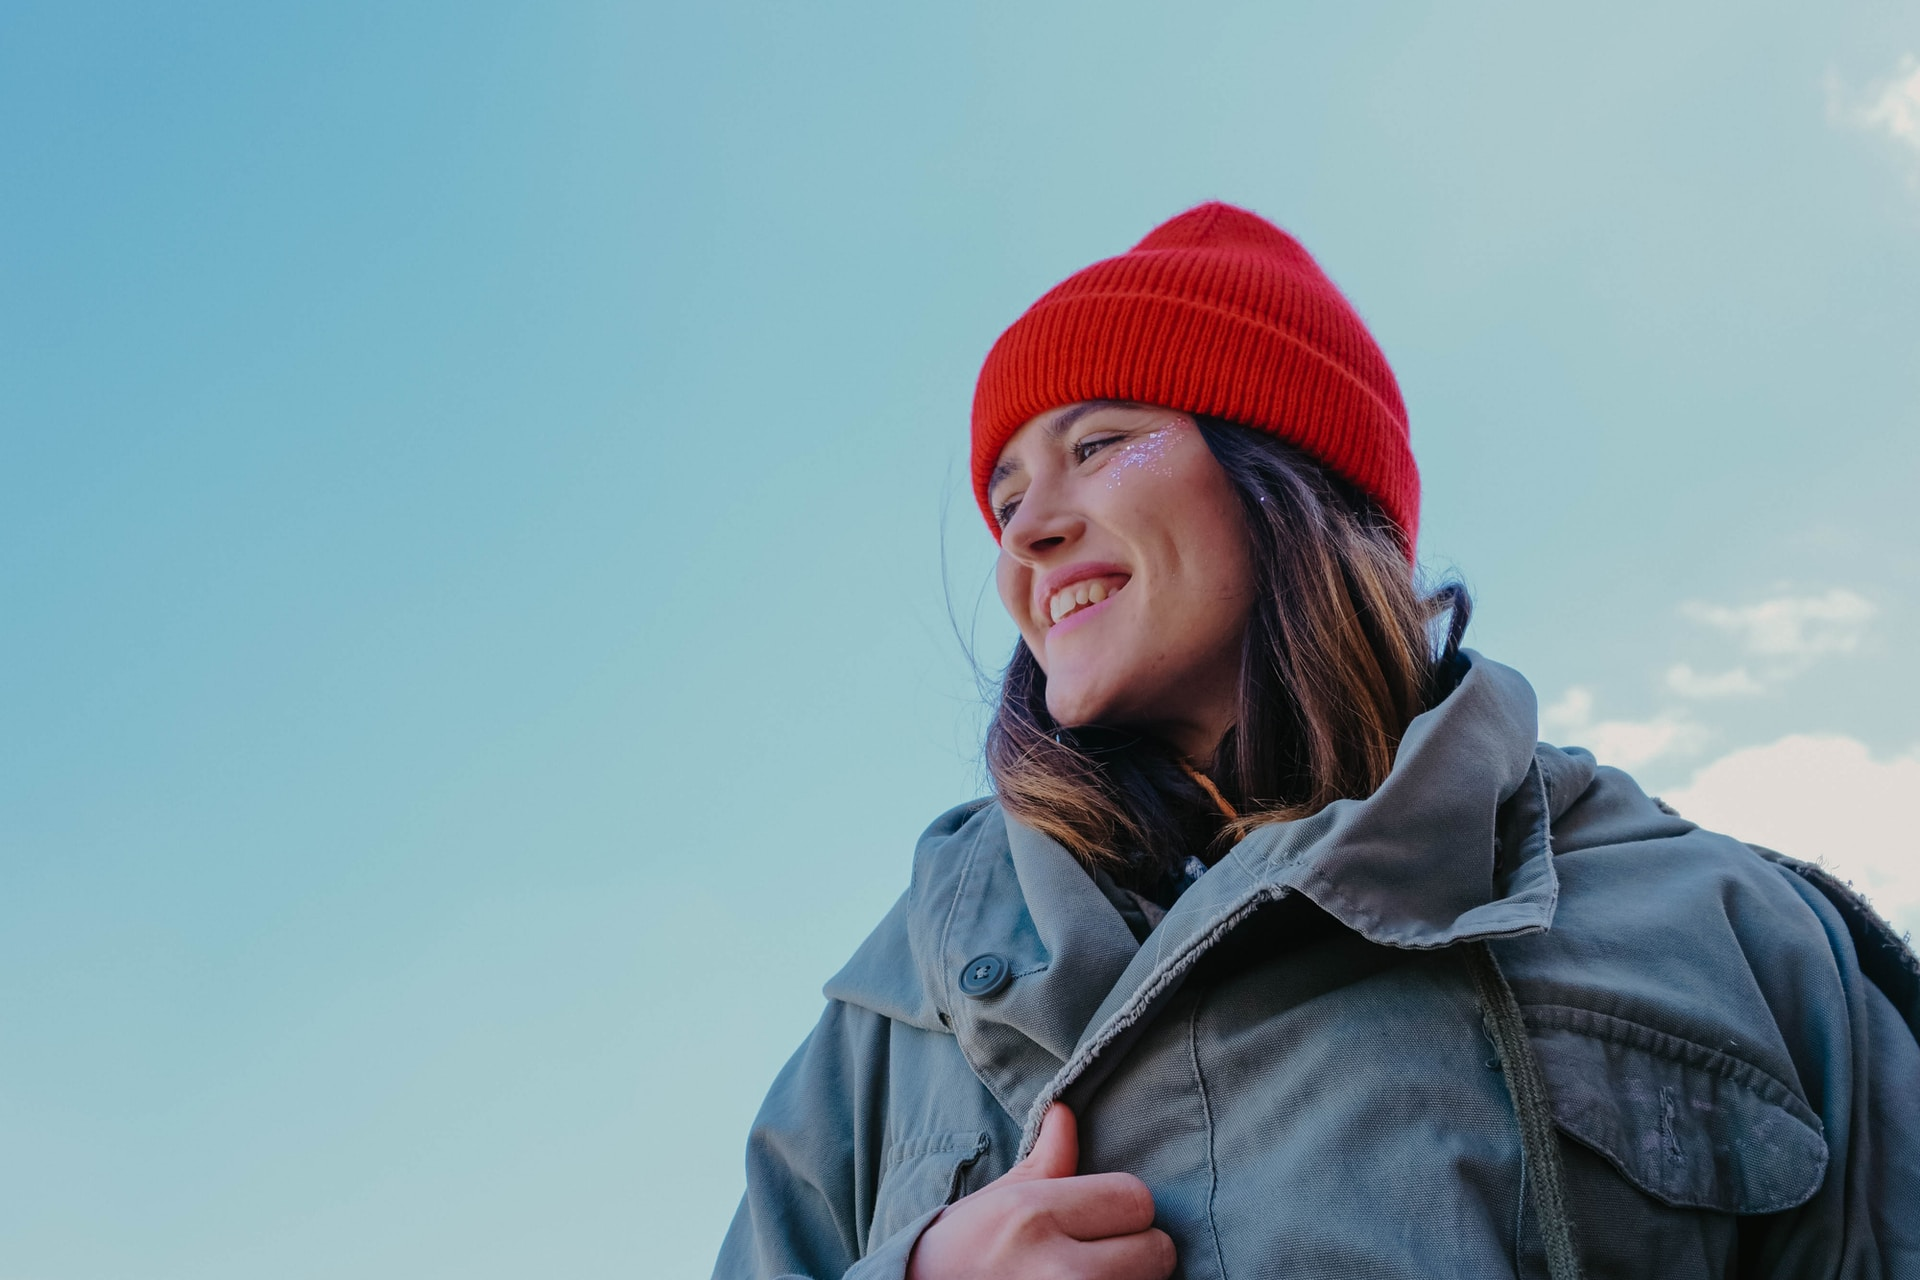 woman in gray jacket and red knit cap